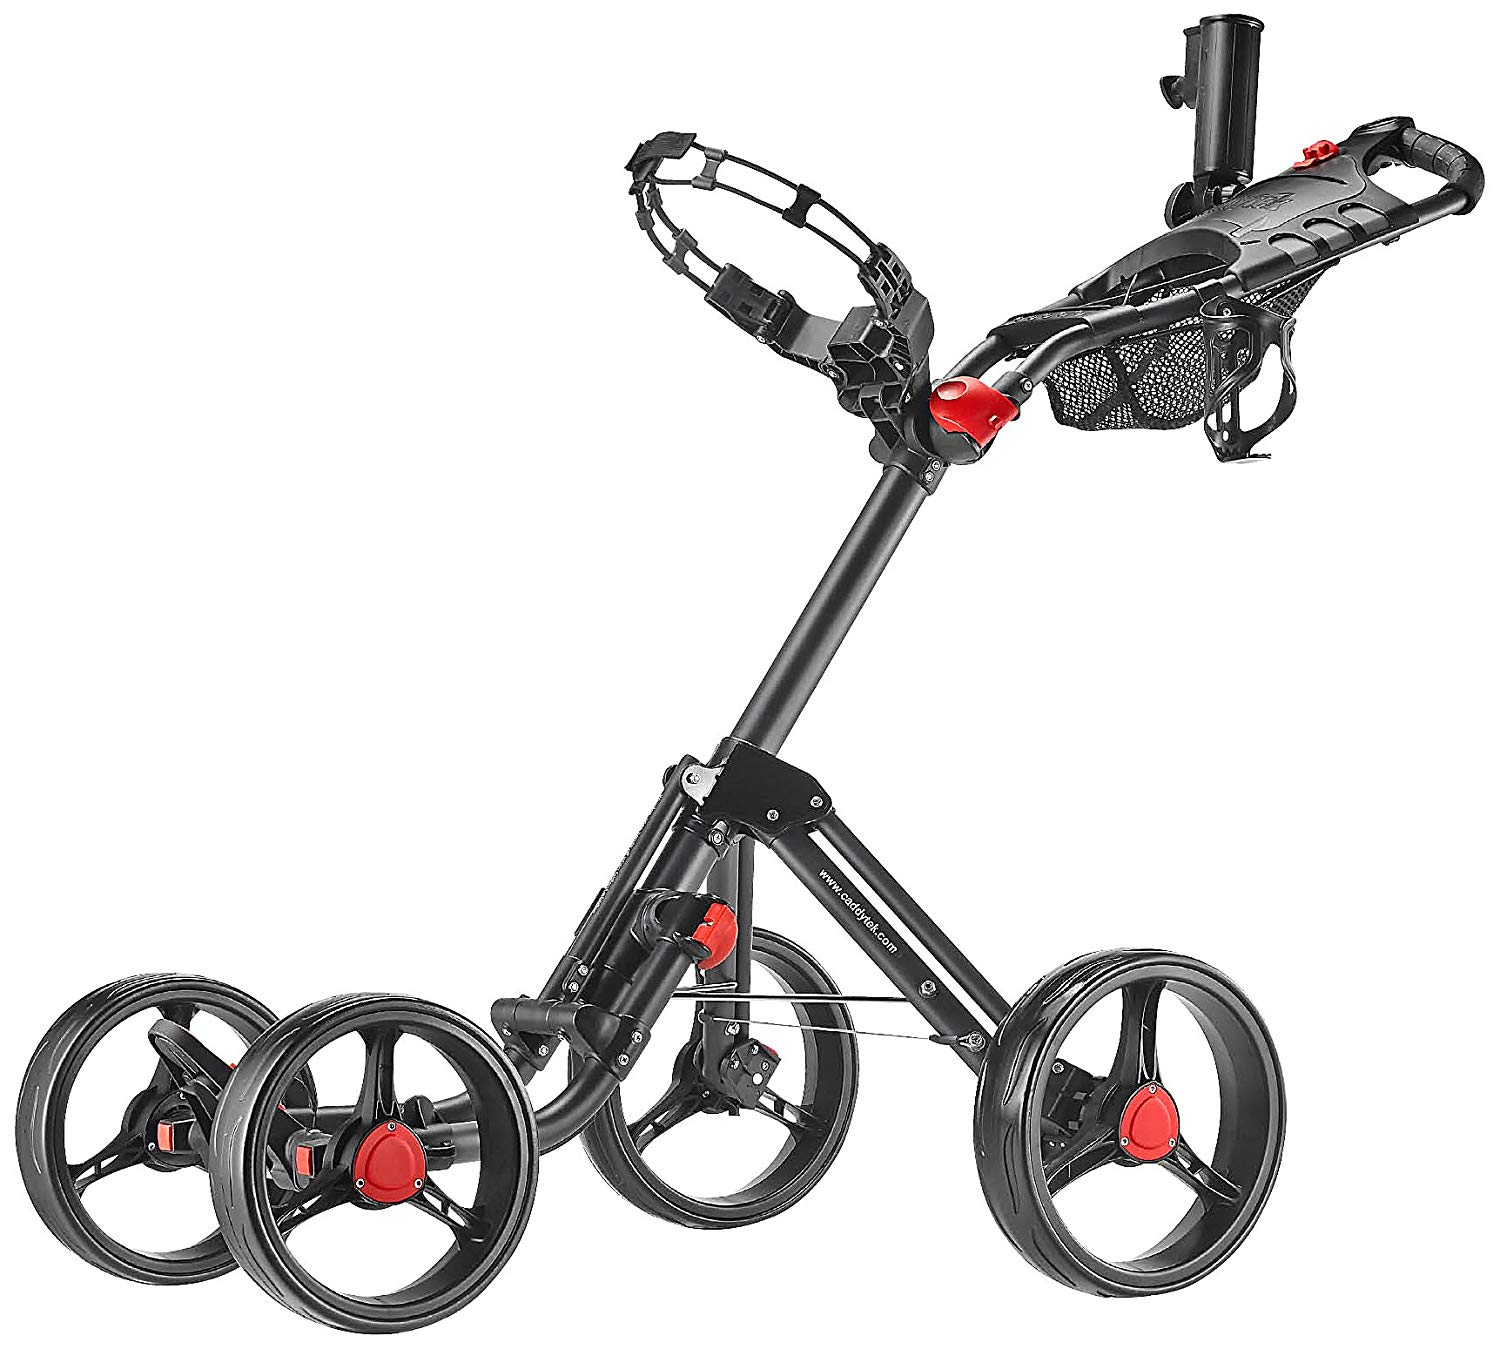 10 Best Golf Push Carts Review No 1 Is Amazing